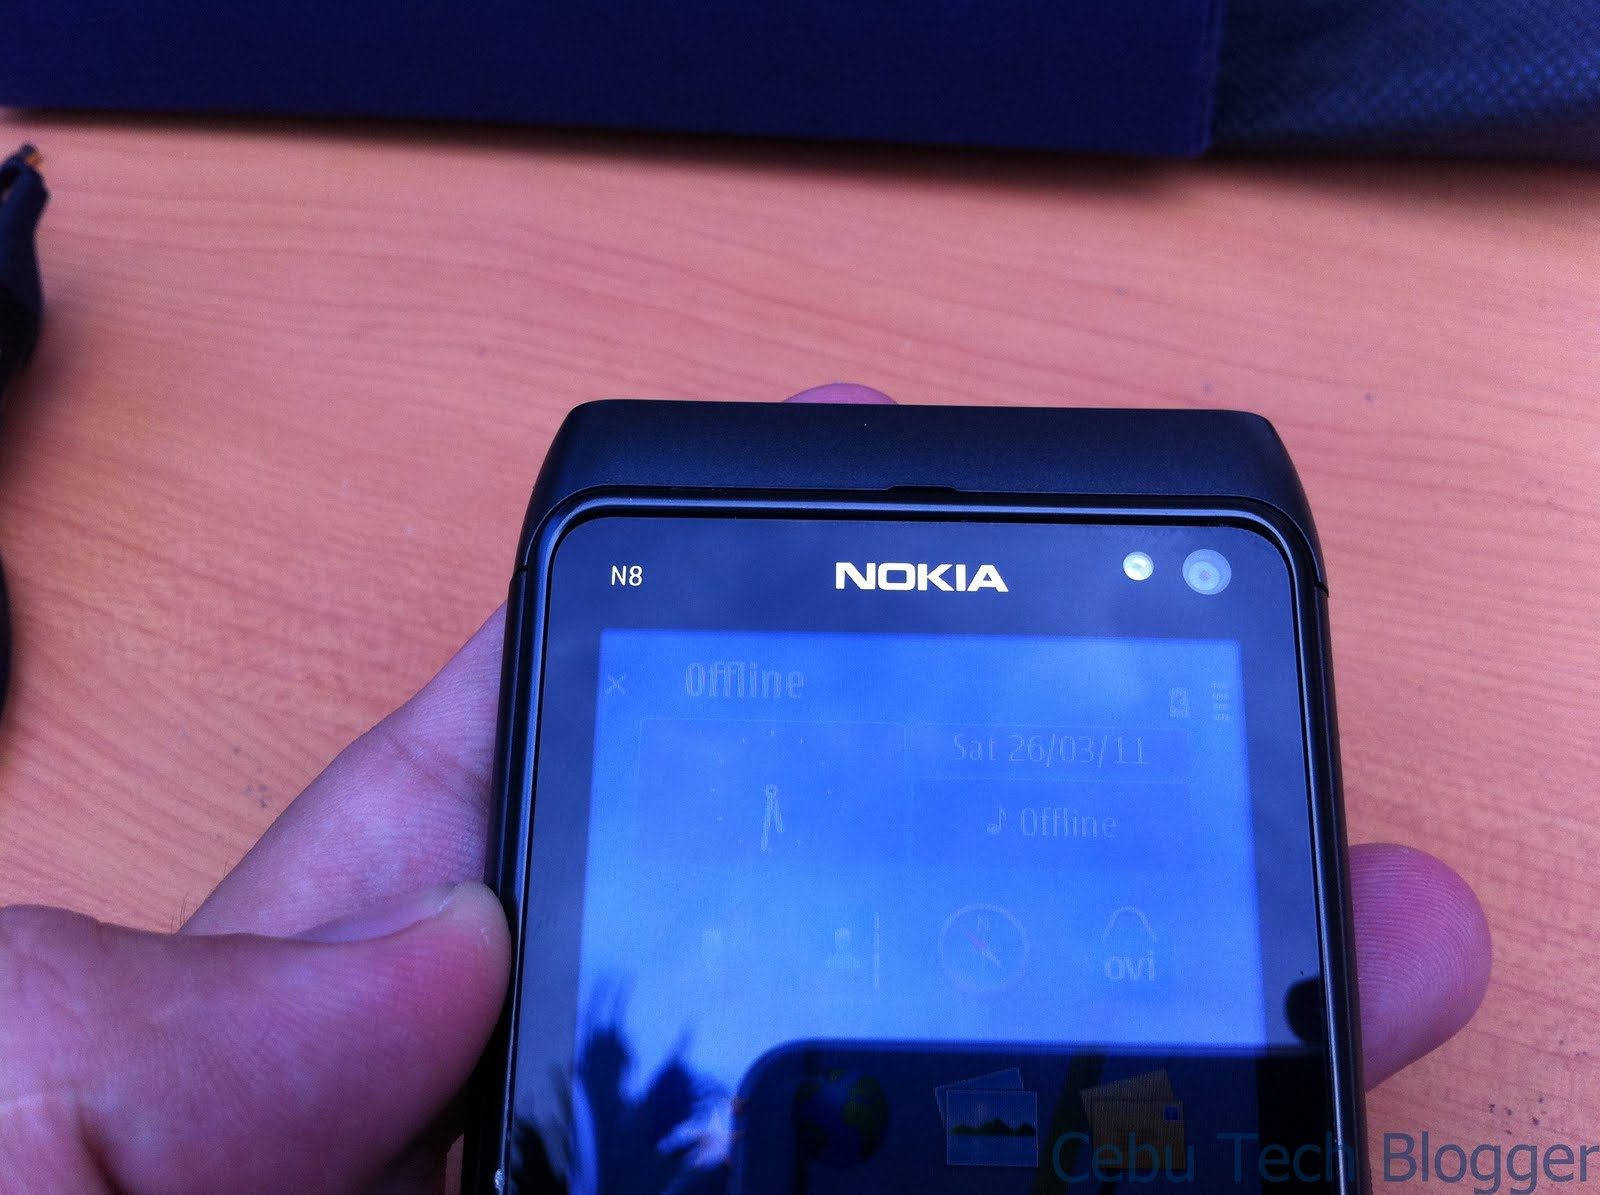 dating apps for nokia n8